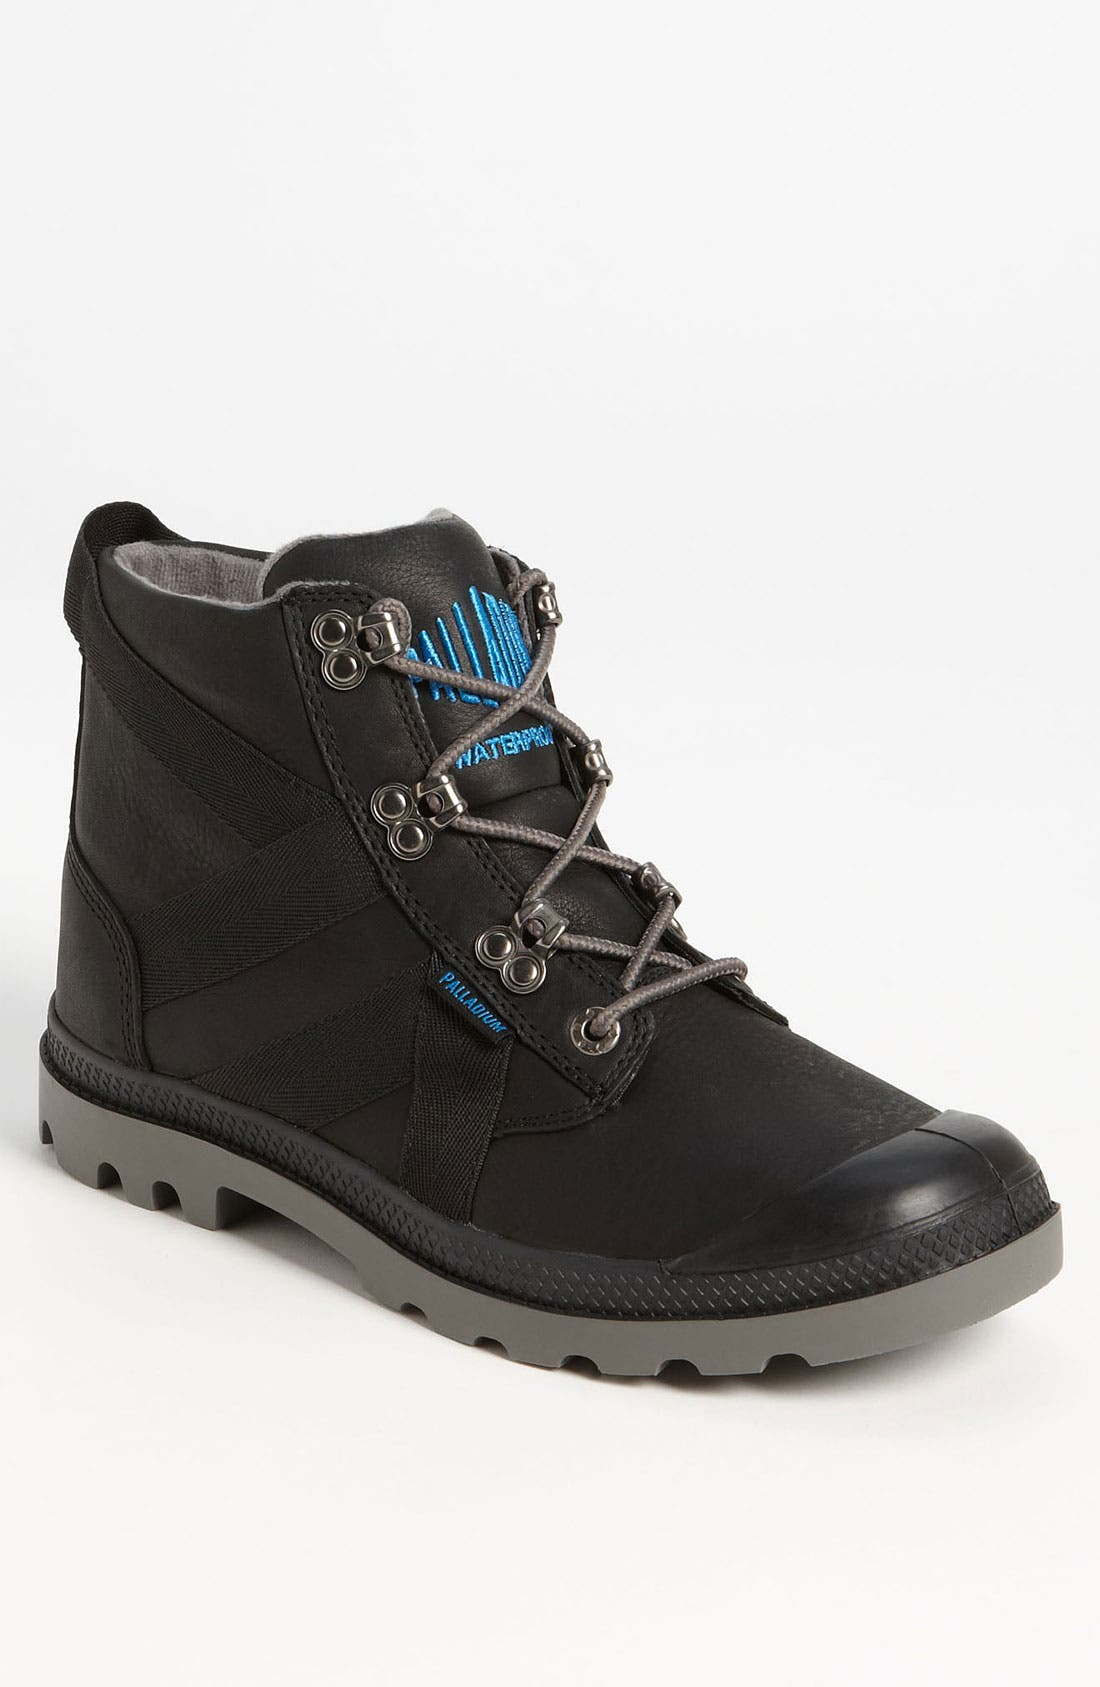 Alternate Image 1 Selected - Palladium 'Pampa' Boot